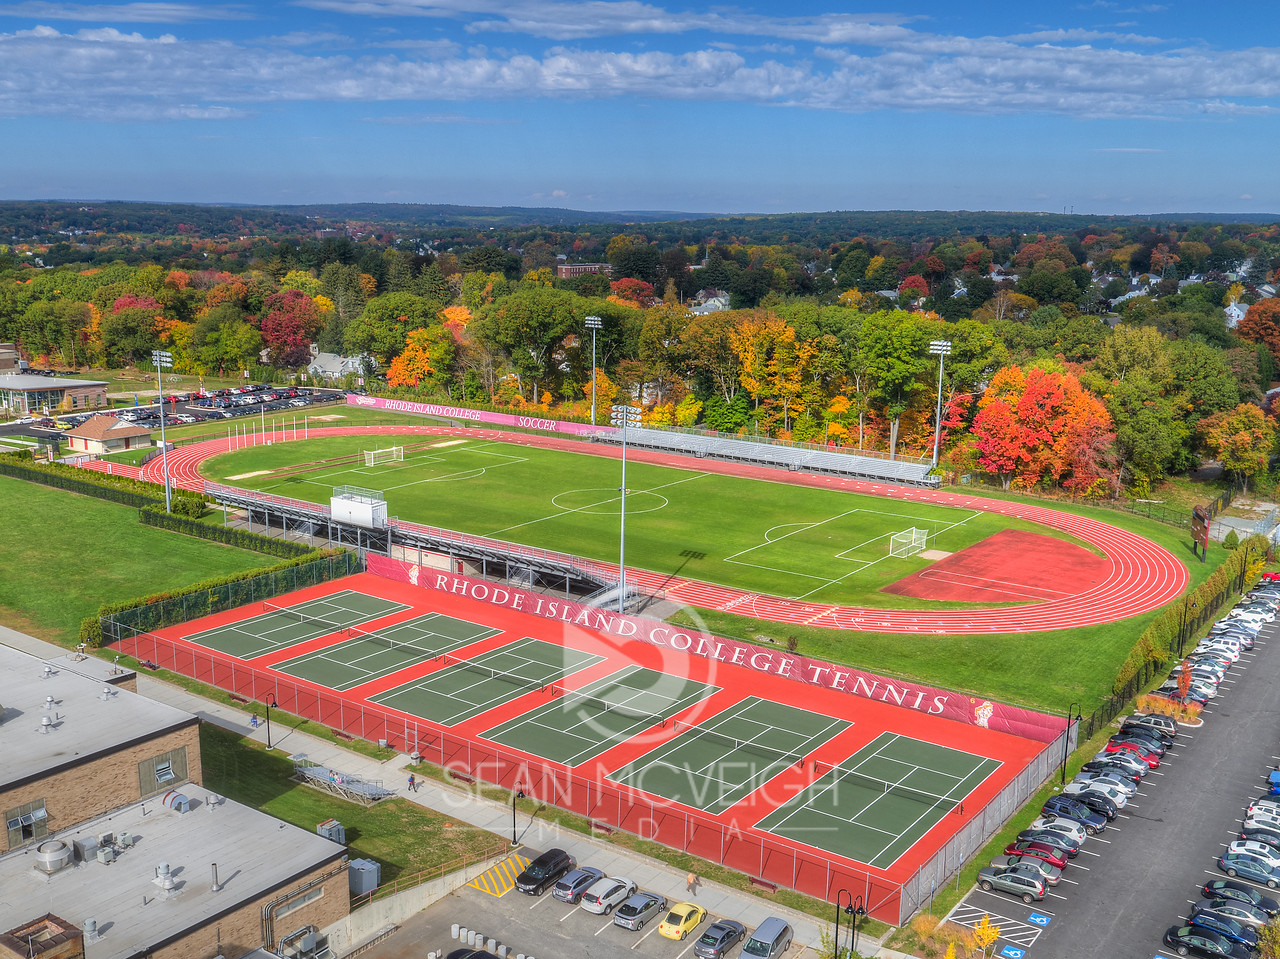 Drone Aerial of Rhode Island College by Sean McVeigh Media